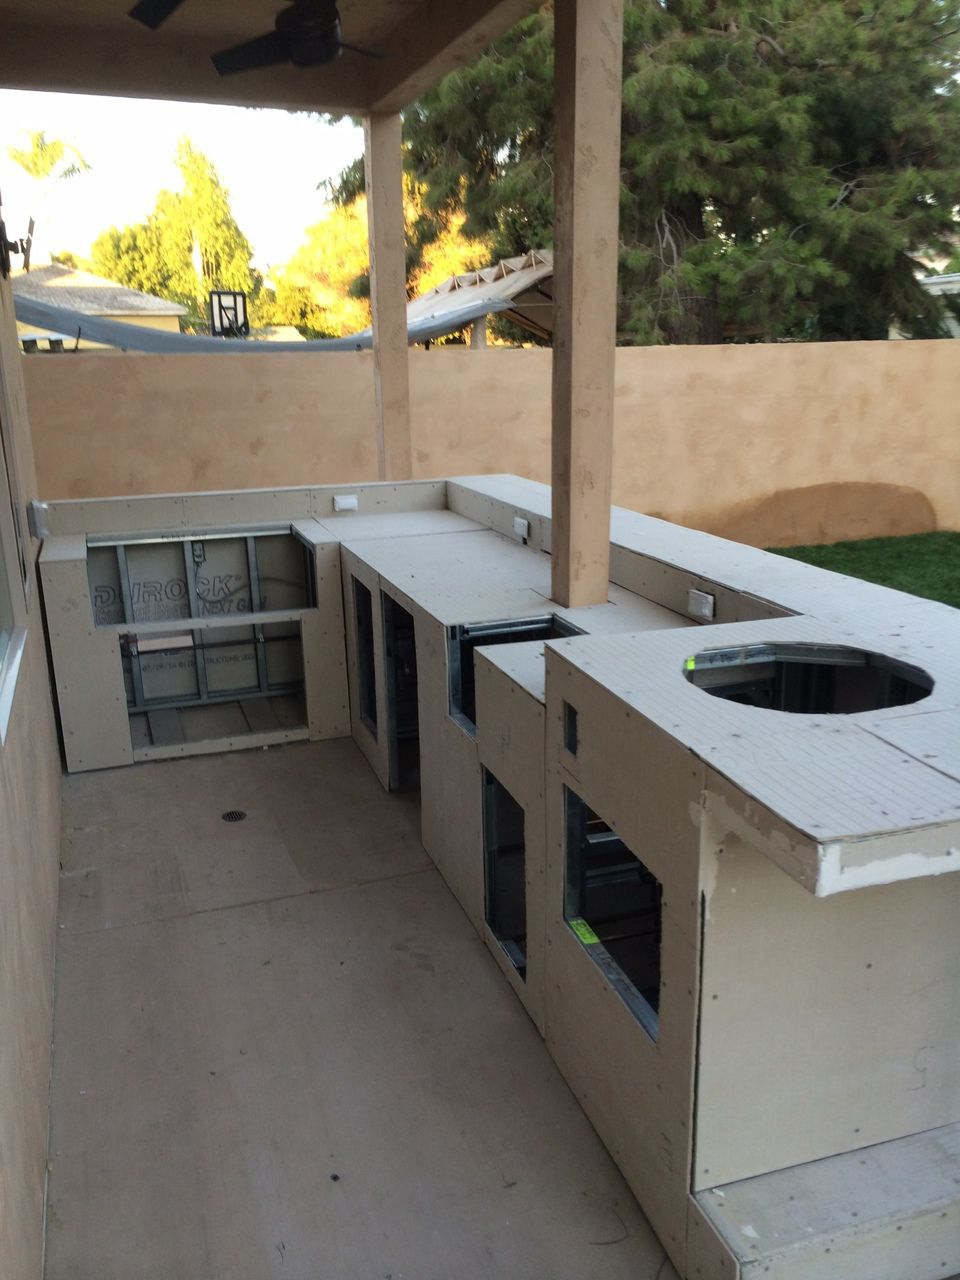 My Idea Metal Framing Cover With Backer Board Redgard And Then Tile Chrisjoi Outdoor Bbq Kitchen Build Outdoor Kitchen Outdoor Kitchen Design